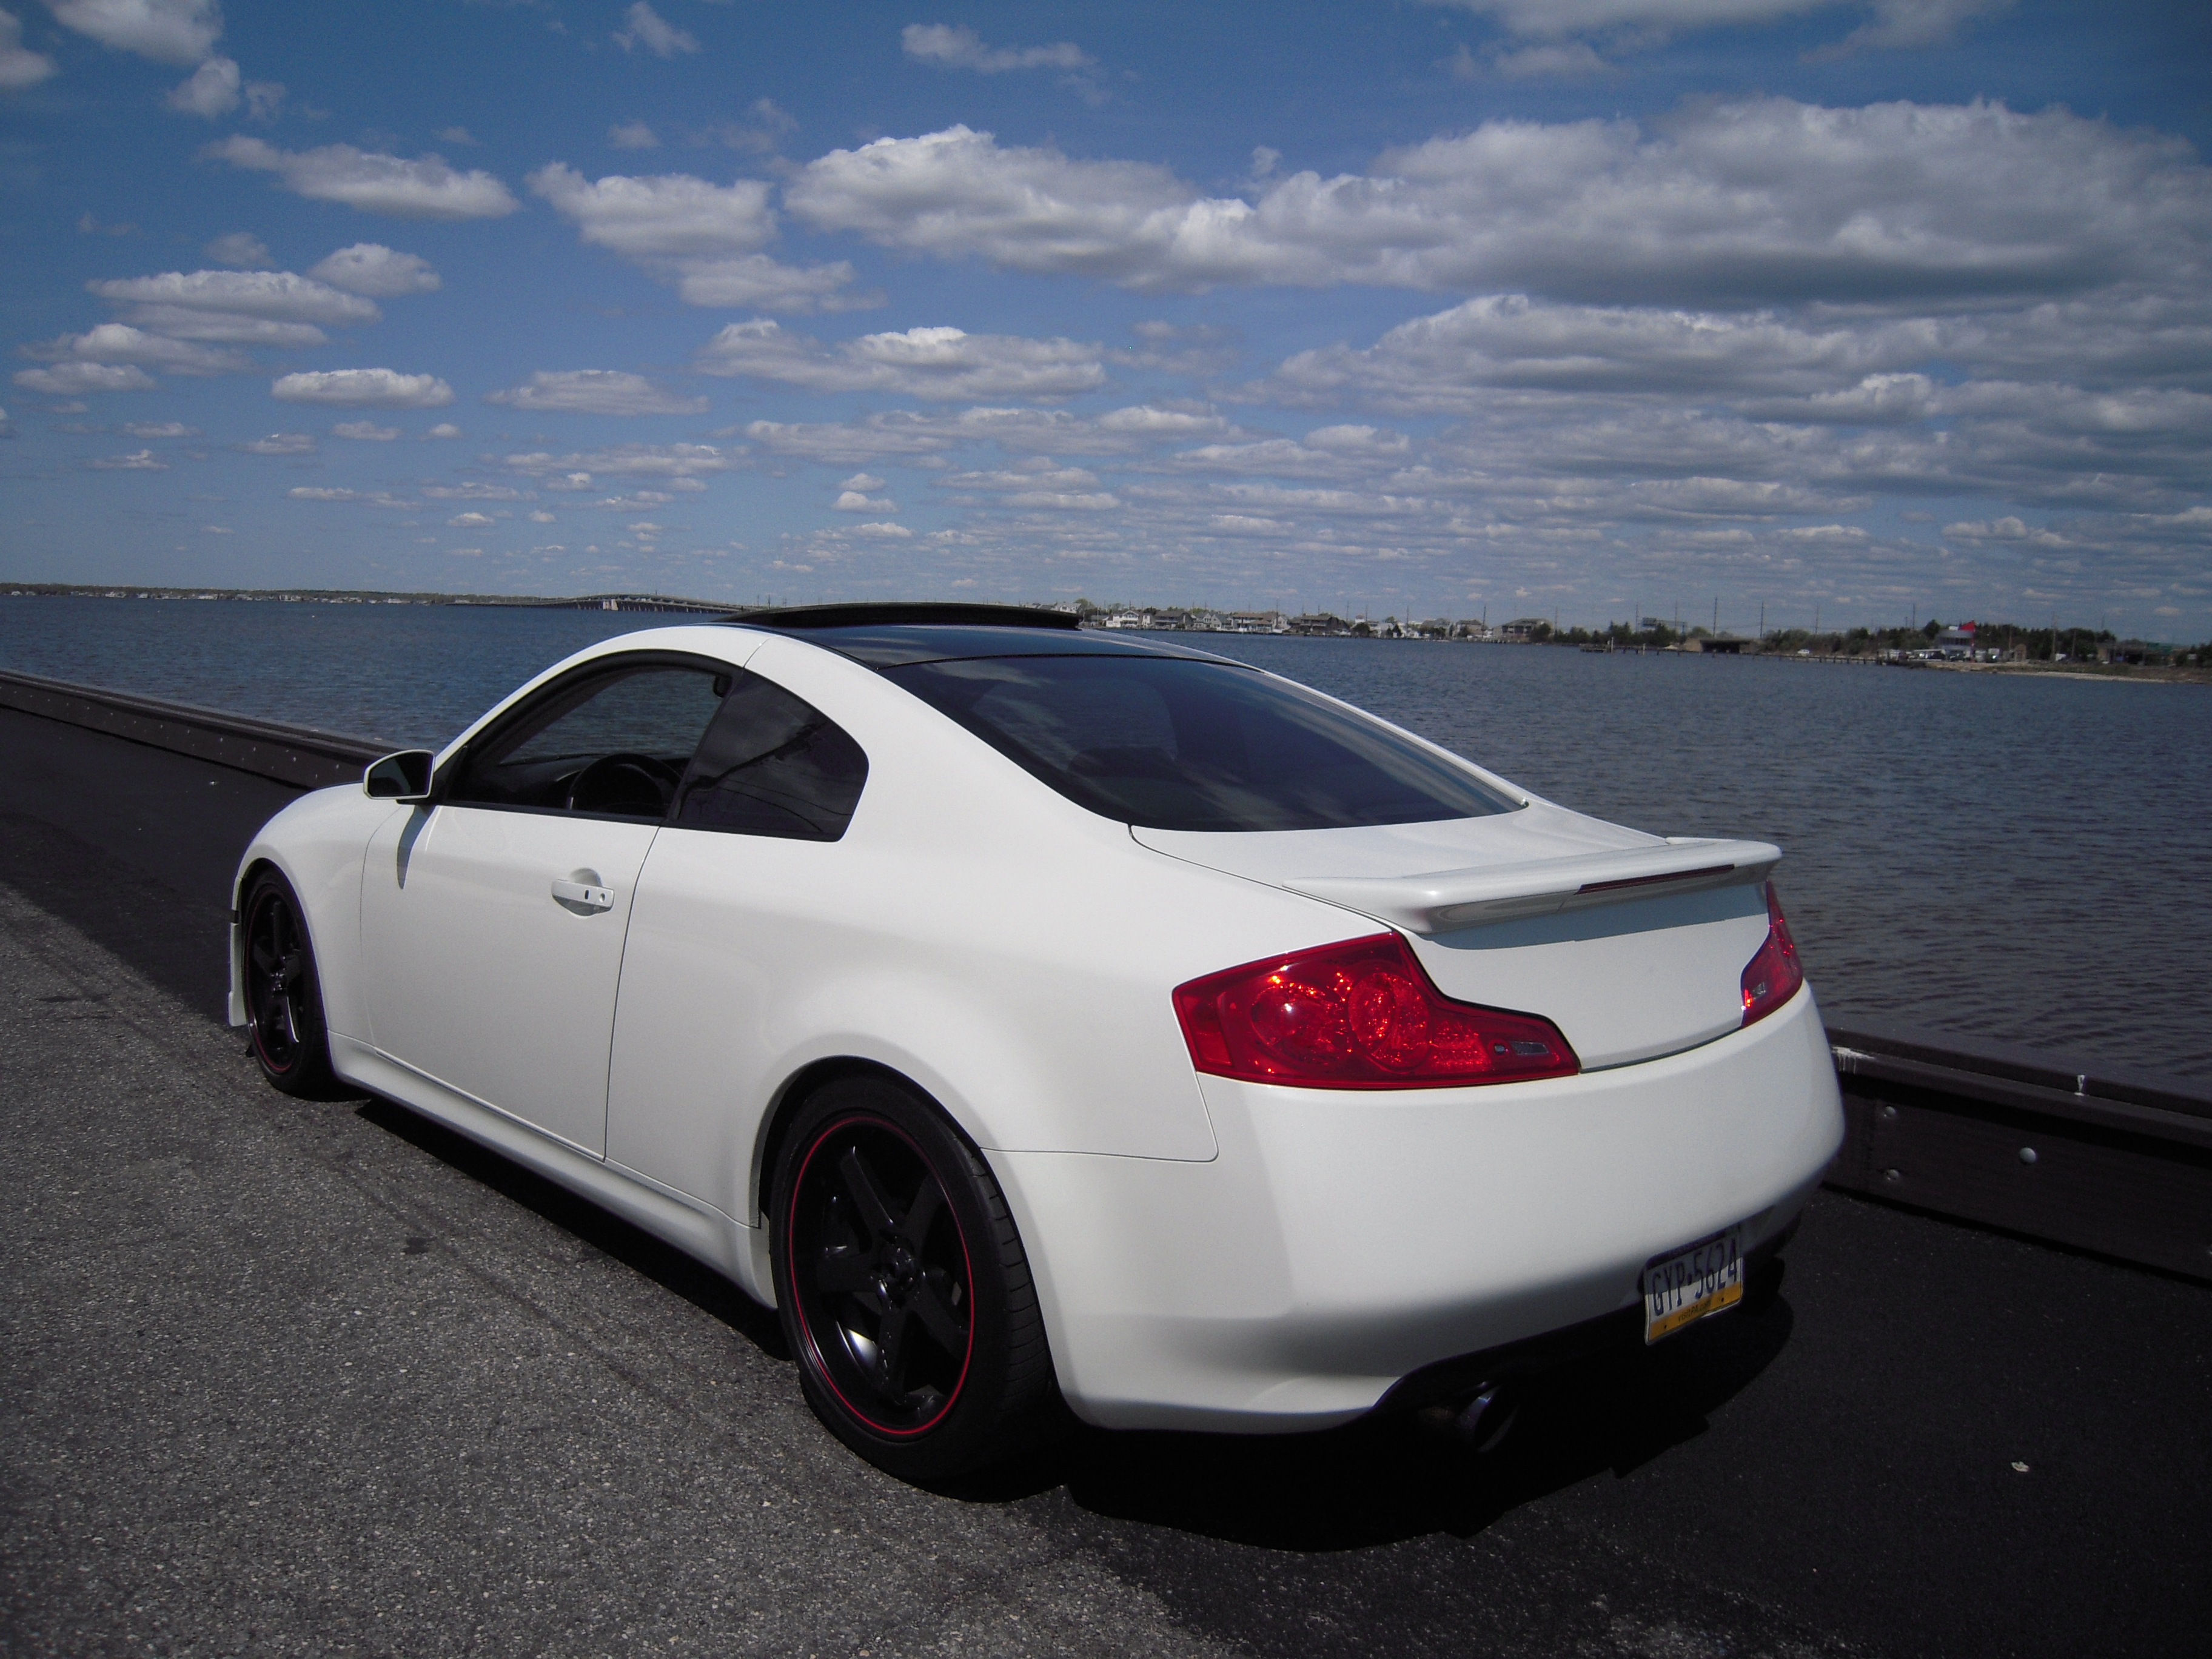 ip g35 coupe 2006 infiniti gg35 coupe 2d specs photos. Black Bedroom Furniture Sets. Home Design Ideas